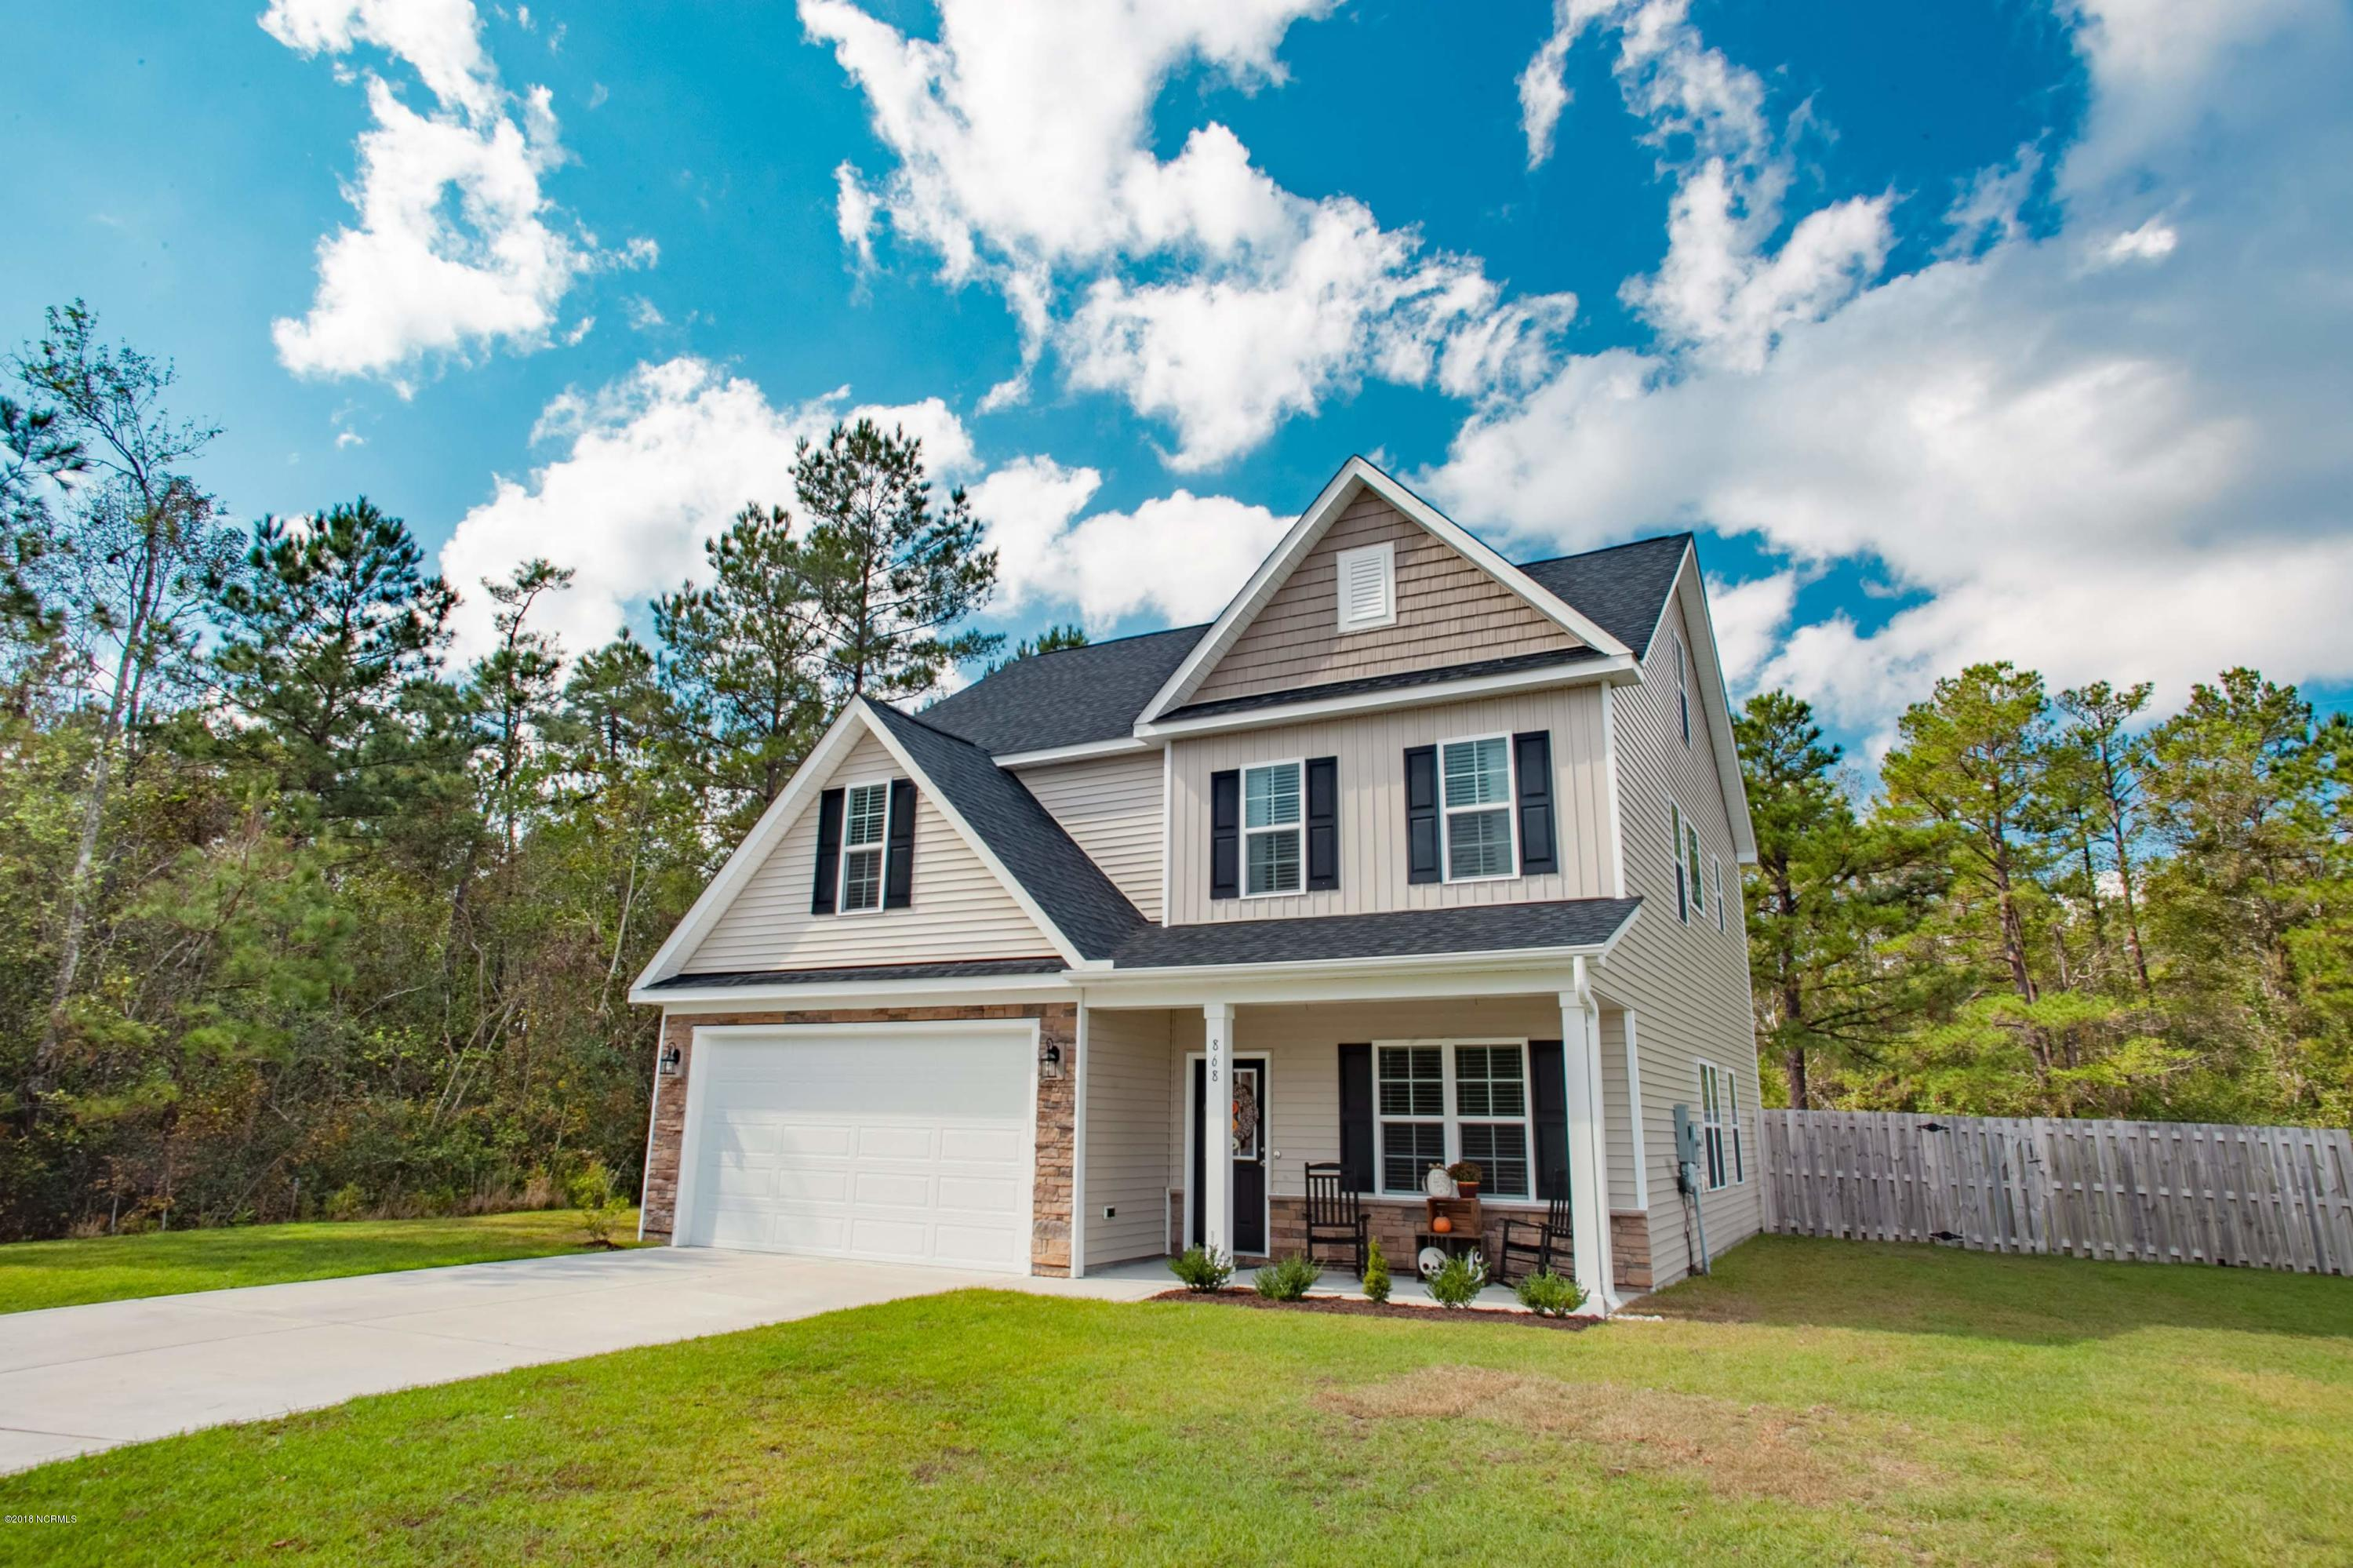 868 Heart Wood Loop Road Leland, NC 28451